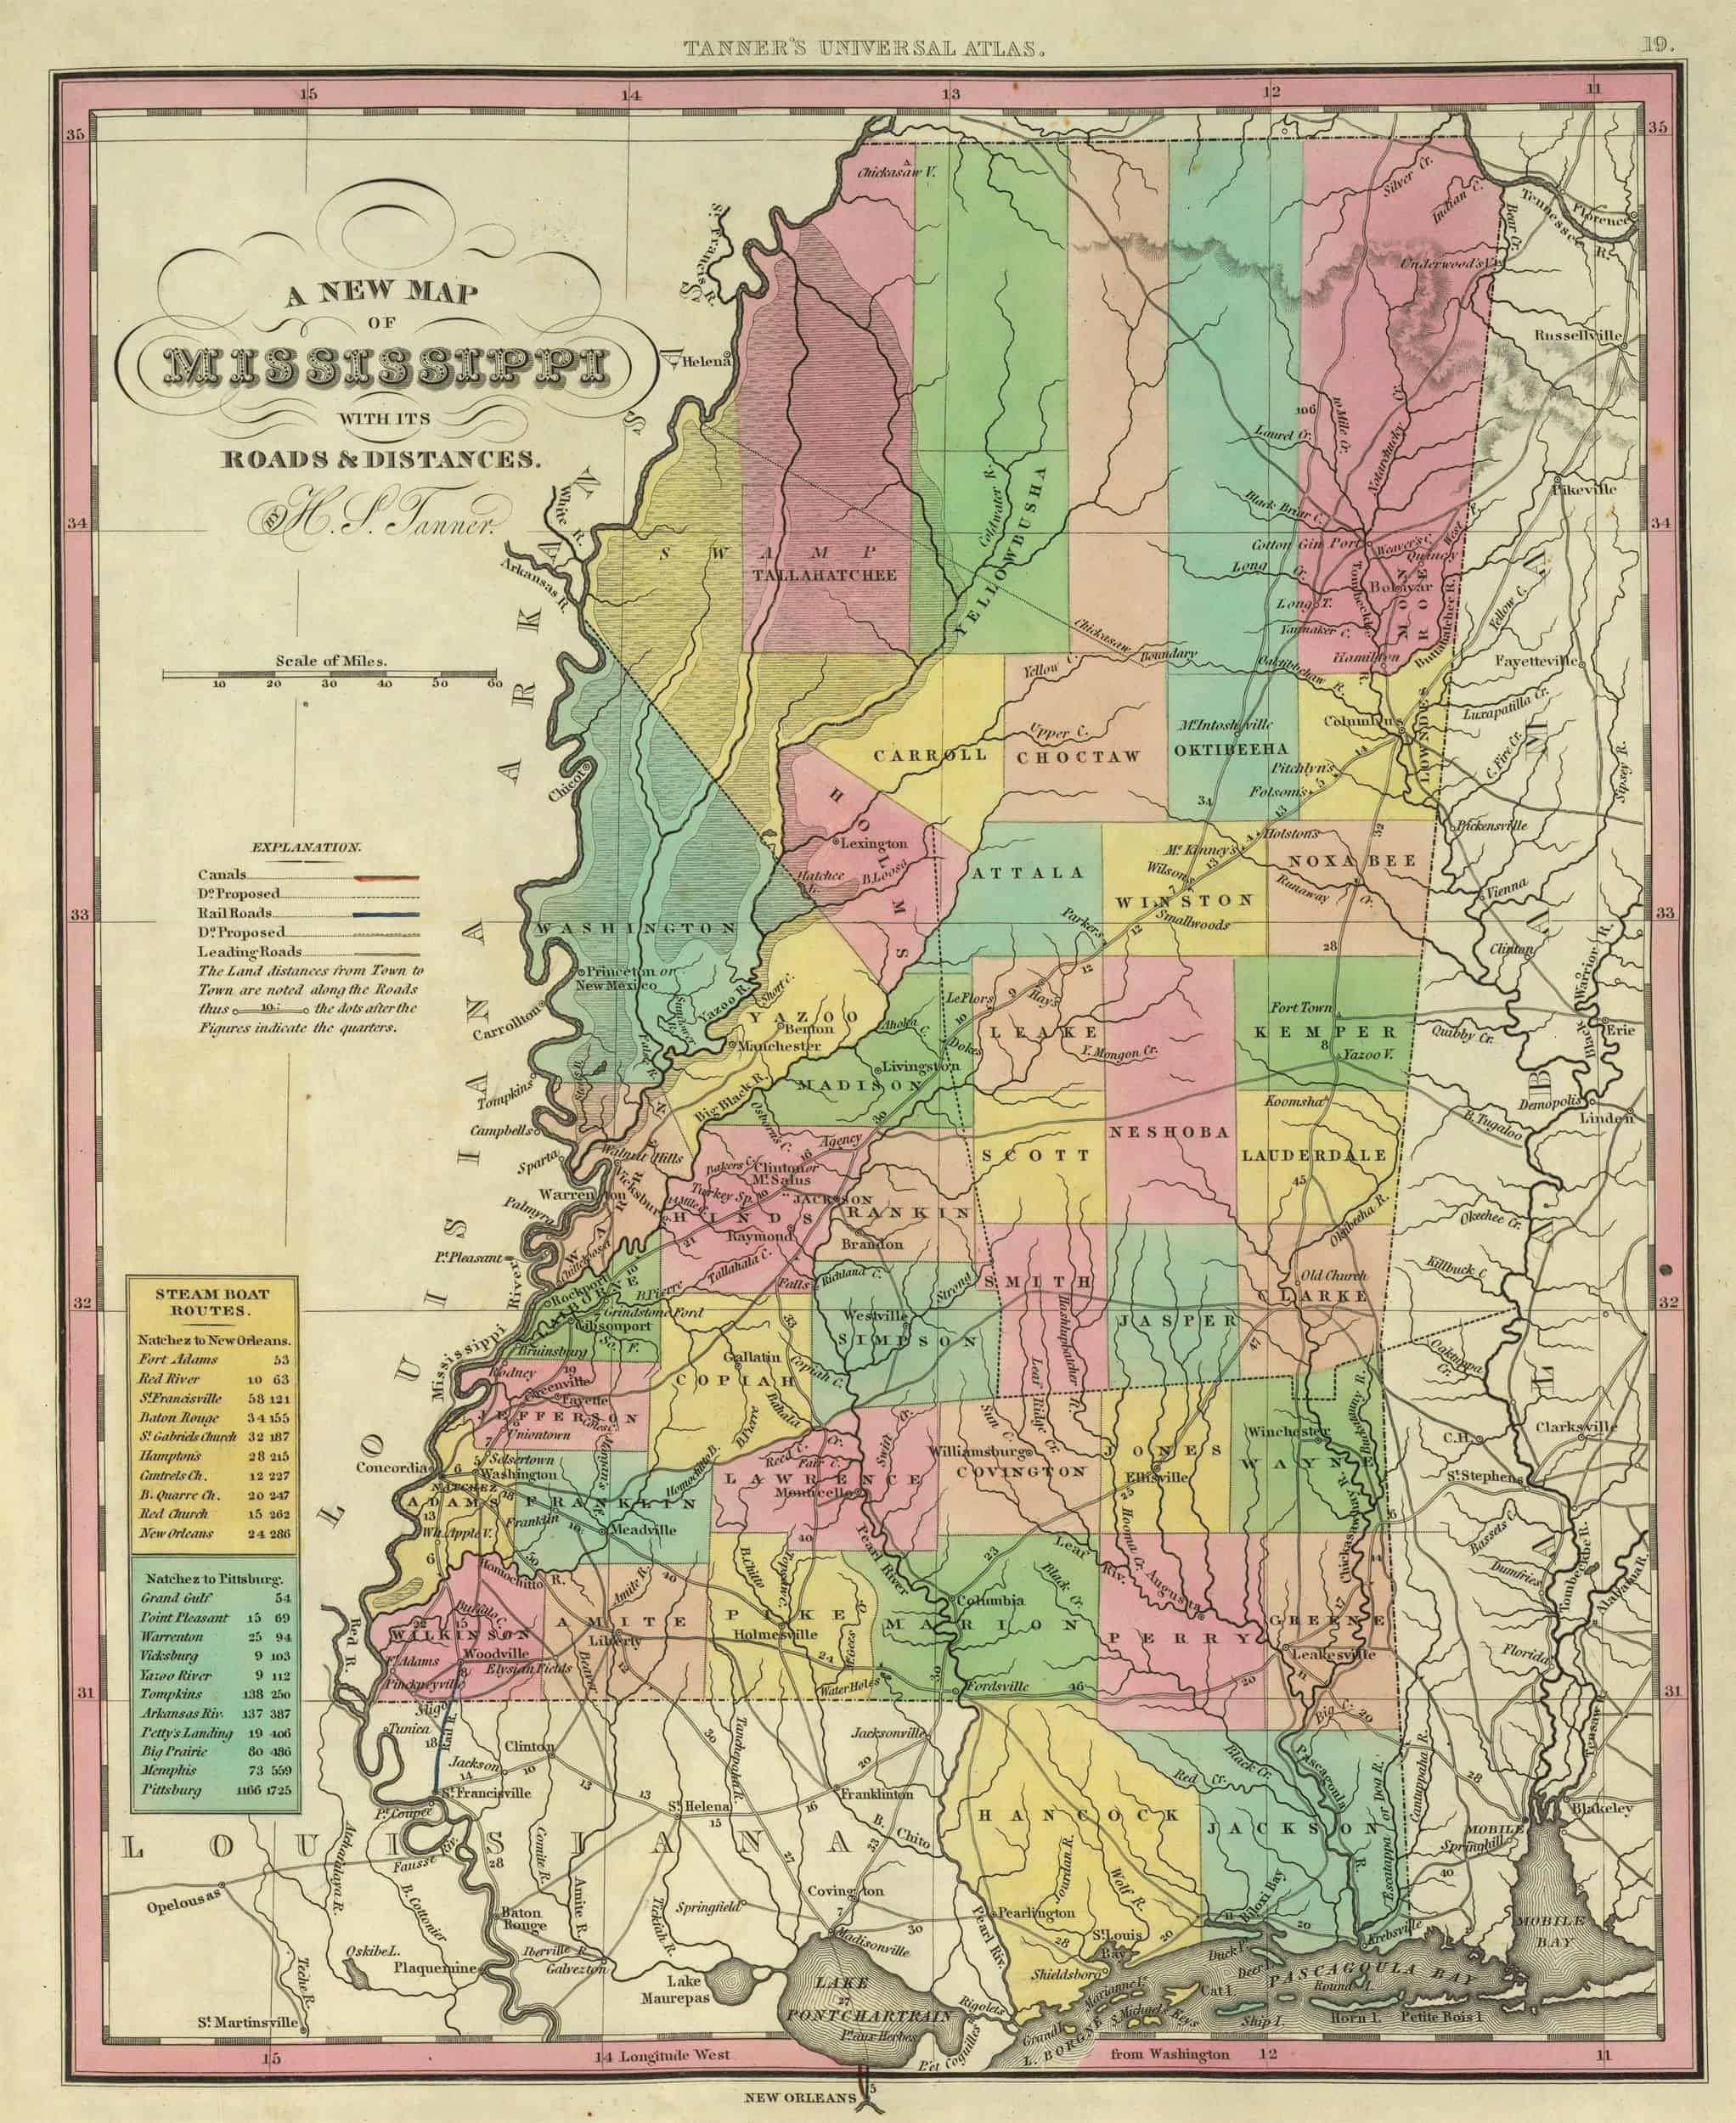 Old Historical City, County and State Maps of Mississippi on eastern pa map cities, indiana map cities, alabama map cities, missouri map cities, pacific map cities, northwest us map cities, mountain west map cities, ohio map cities, united states map cities, new mexico map cities, louisiana map cities, pennsylvania map cities, maryland map cities, idaho map cities, oklahoma map cities, columbia map cities, wa map cities, wisconsin map cities, minnesota map cities, virginia map cities,